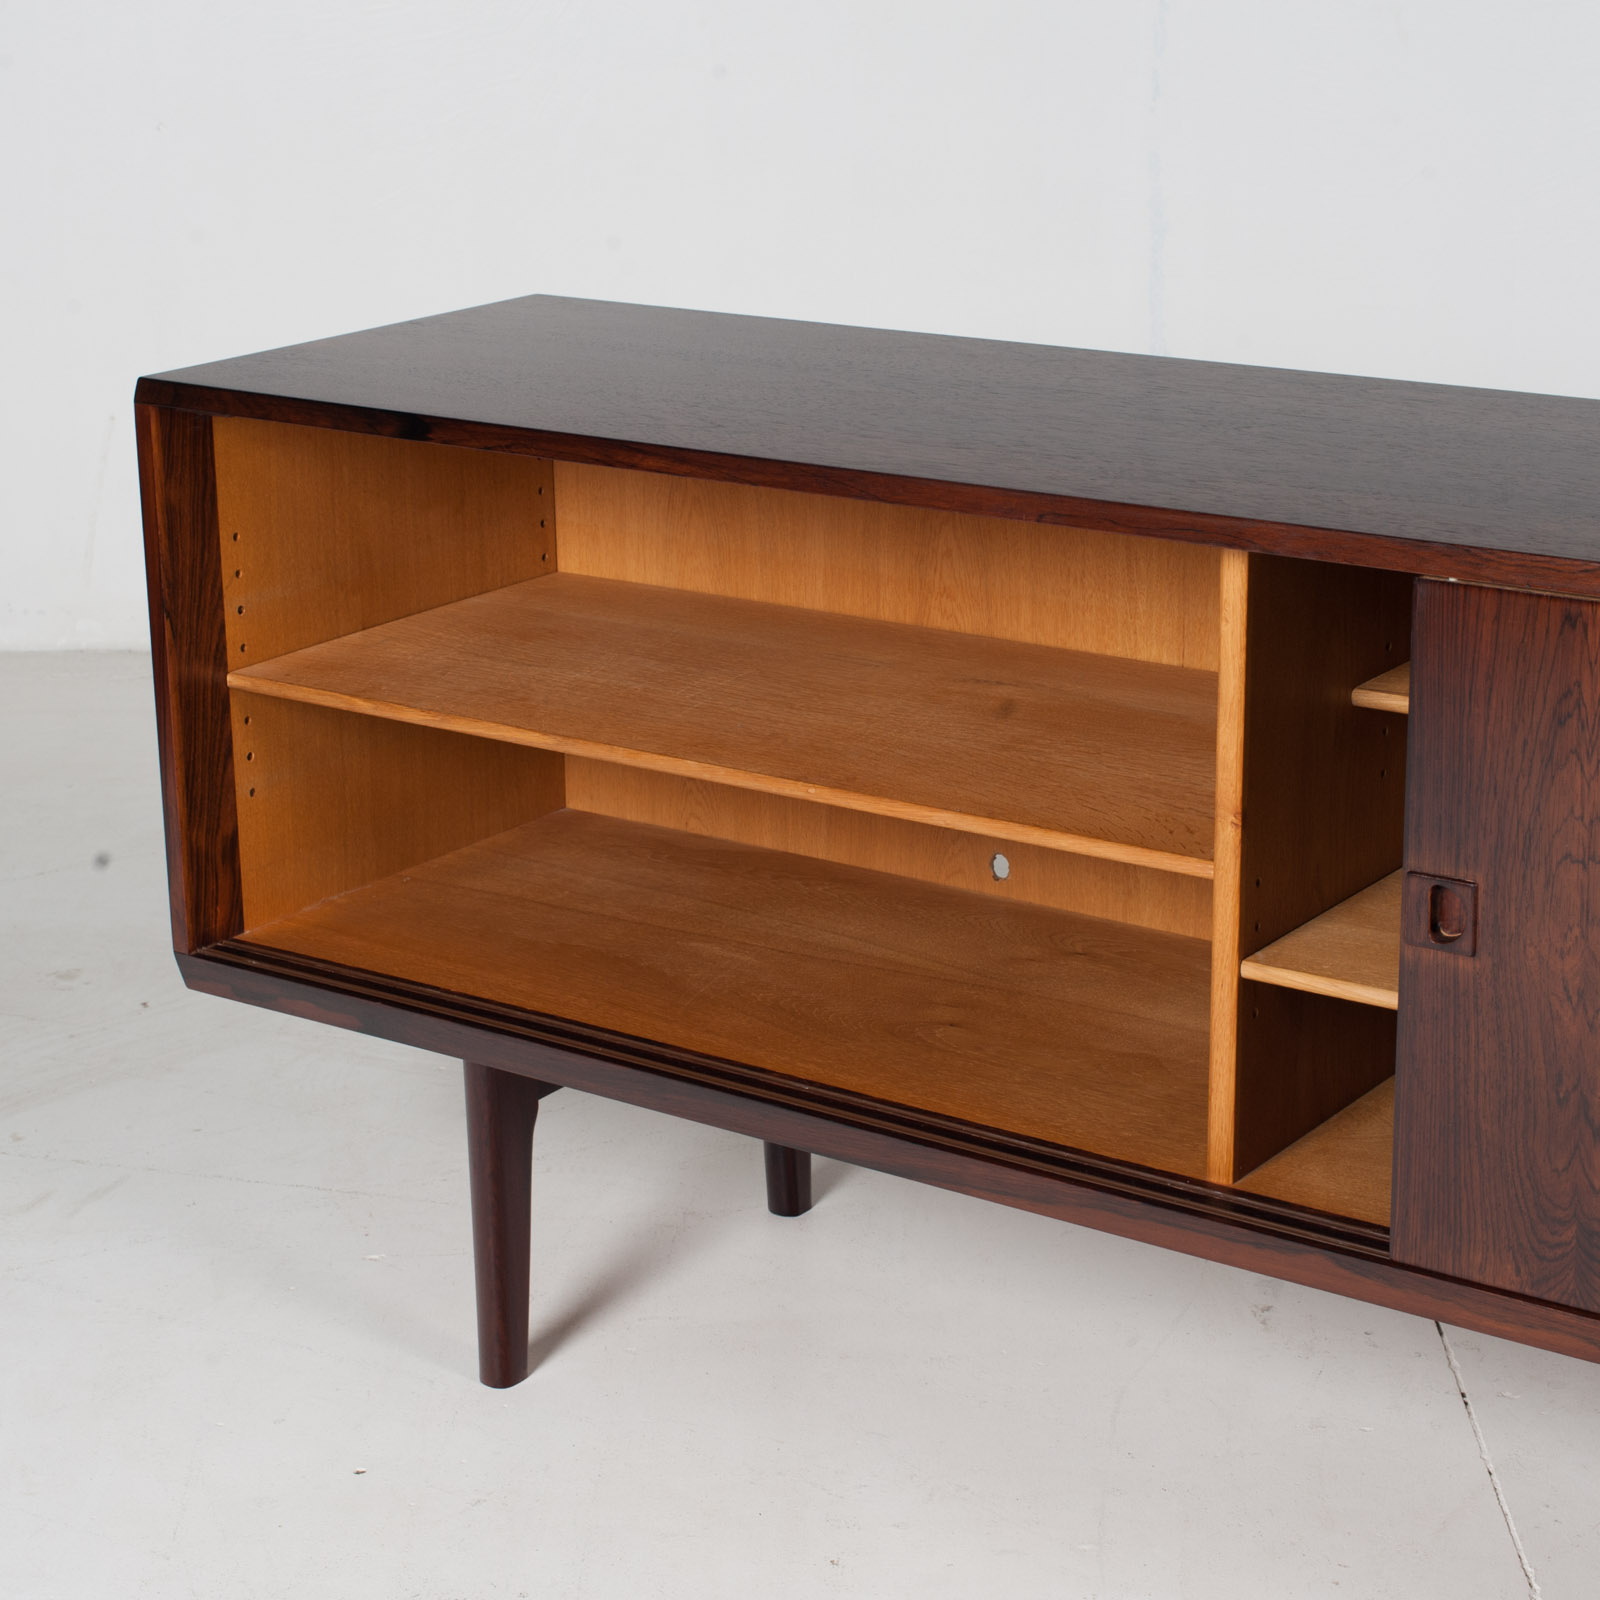 Sideboard In Rosewood With Oak Interior For Brouer Furniture, 1960s, Denmark8 2